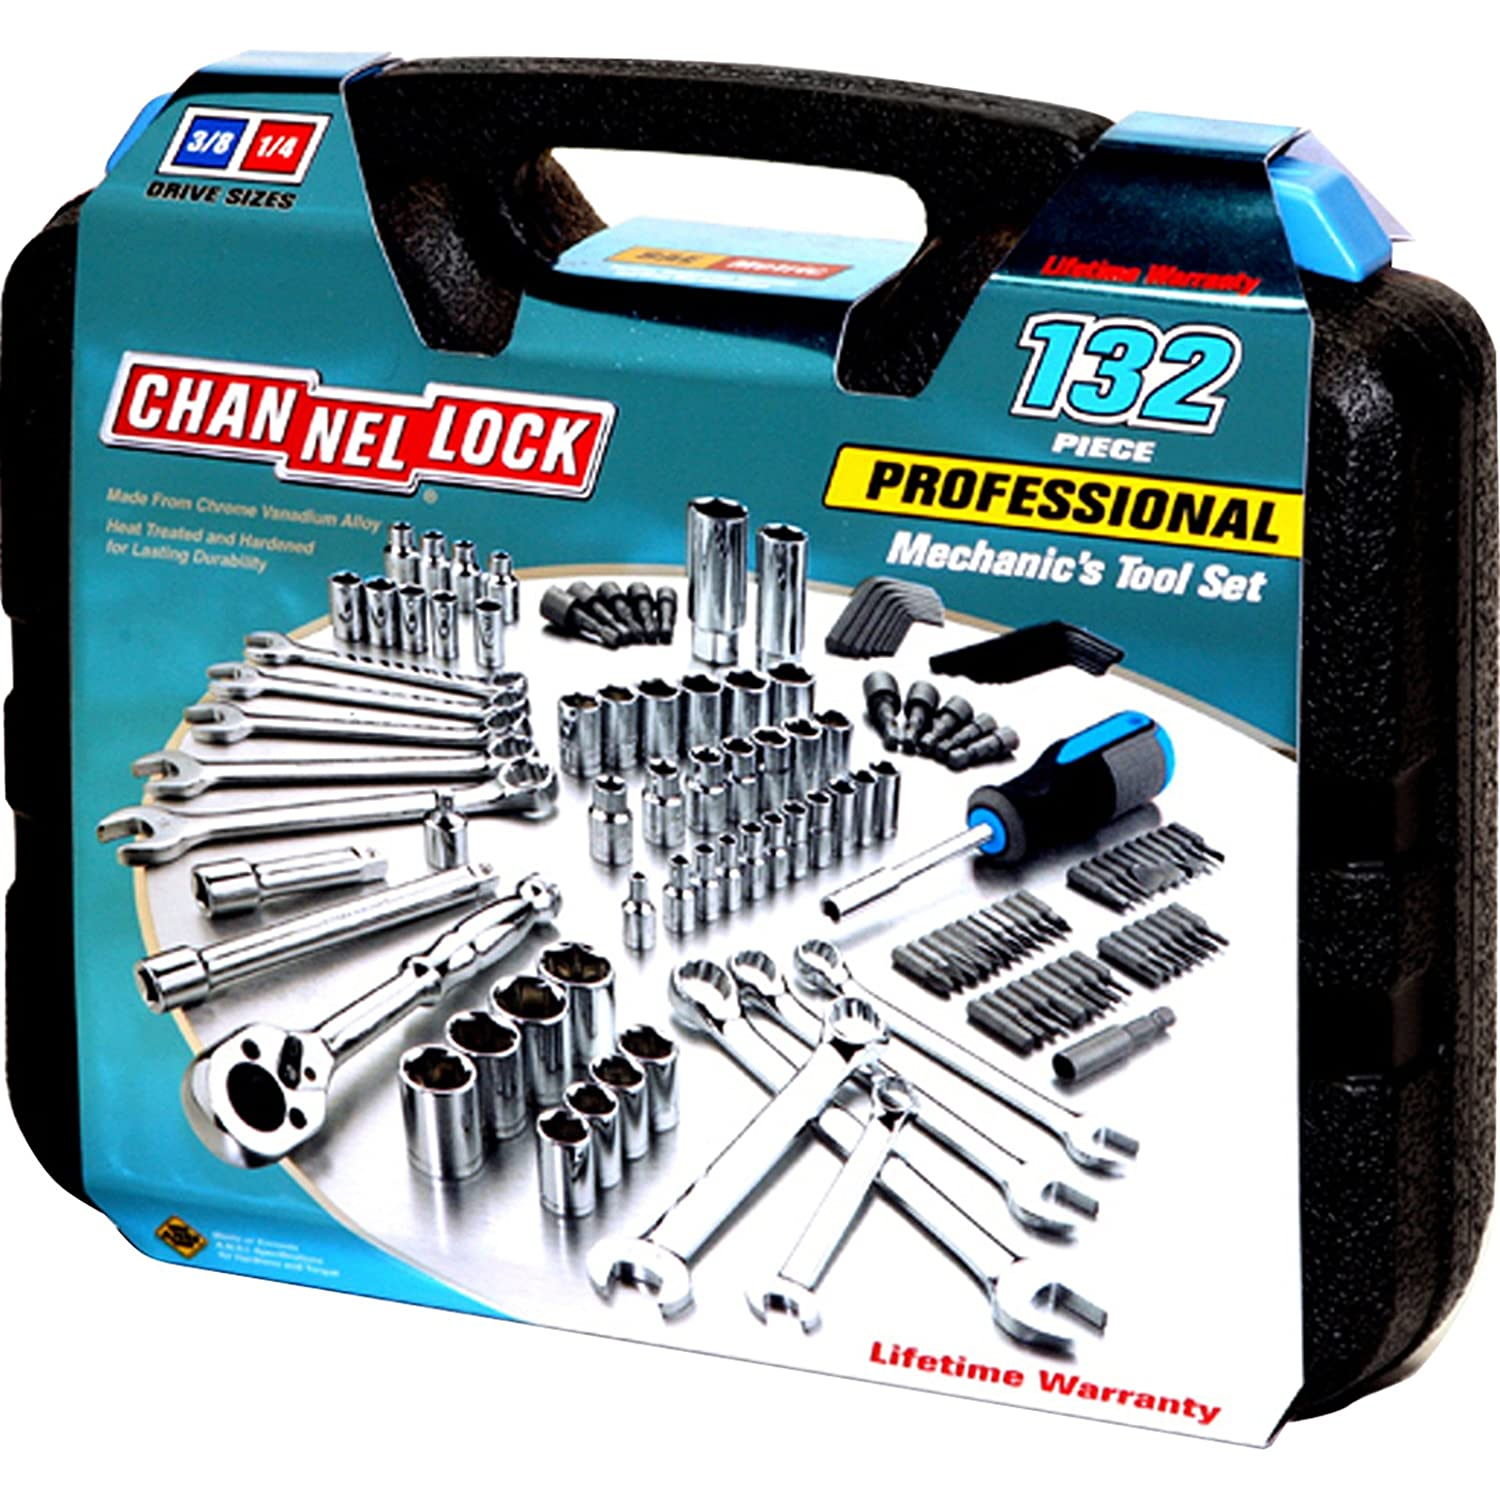 Channellock 39070 94 Piece Tool Set Channel Lock